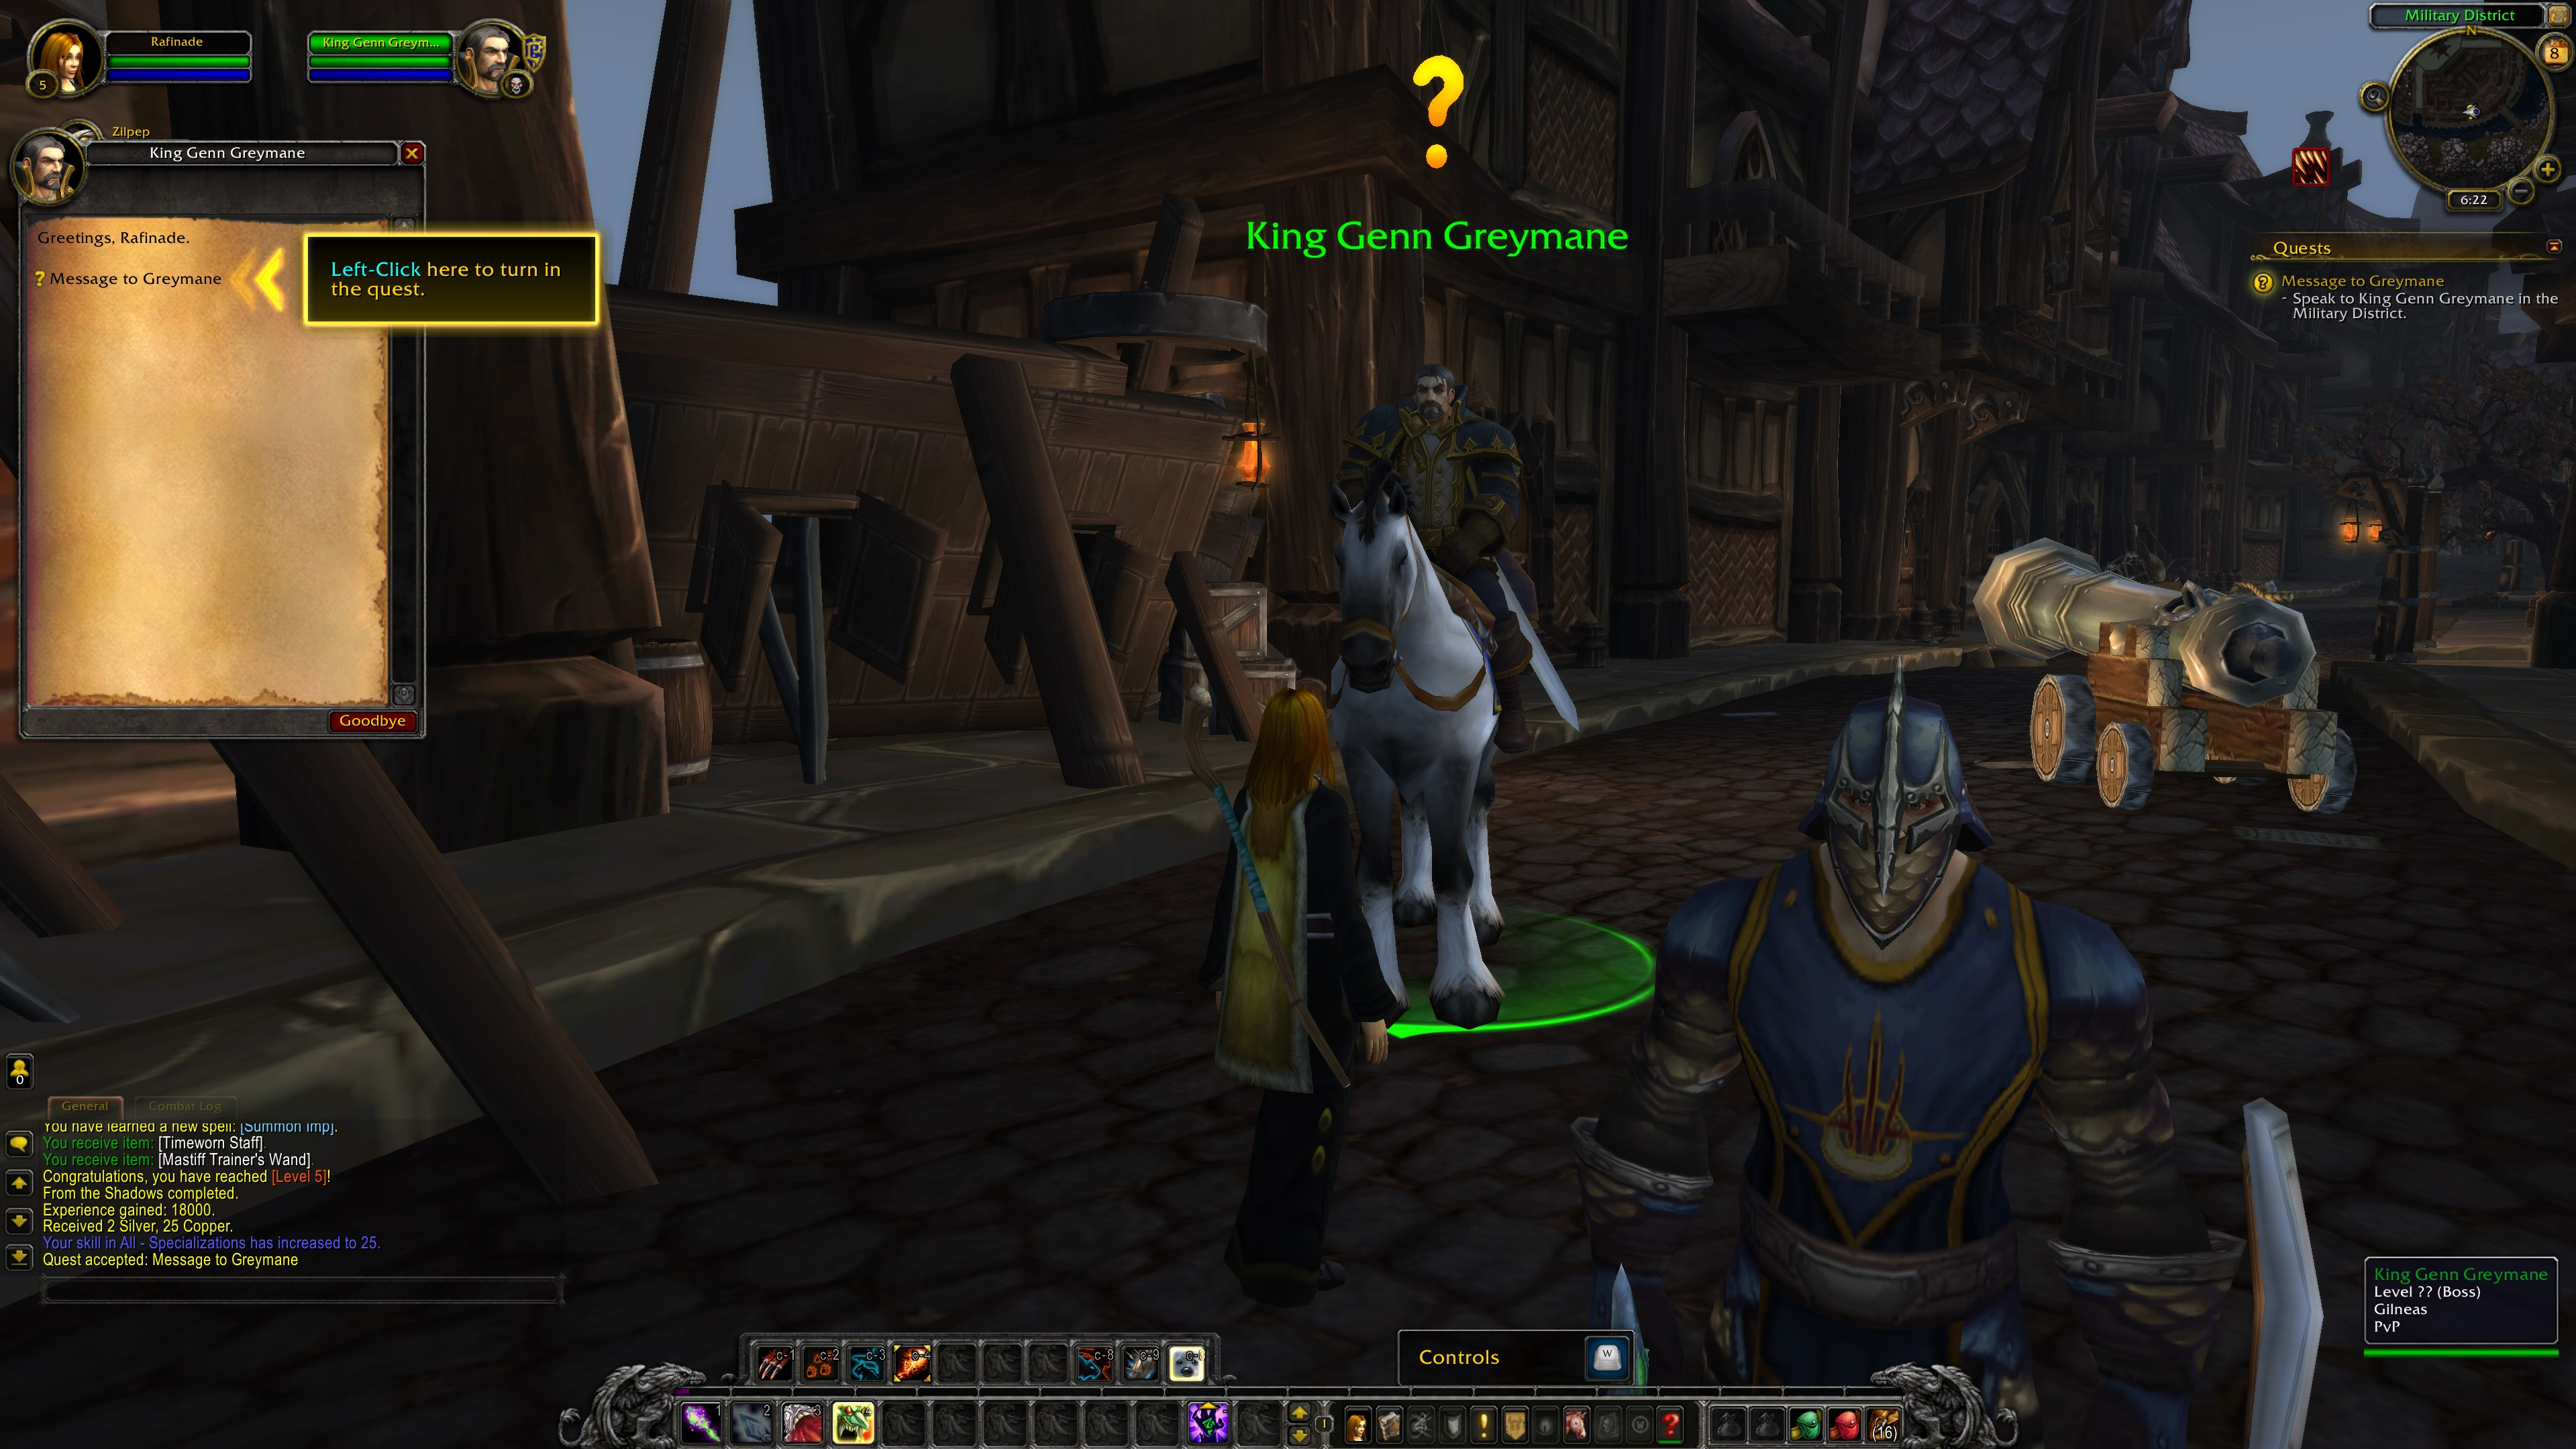 Quest system in World of Warcraft